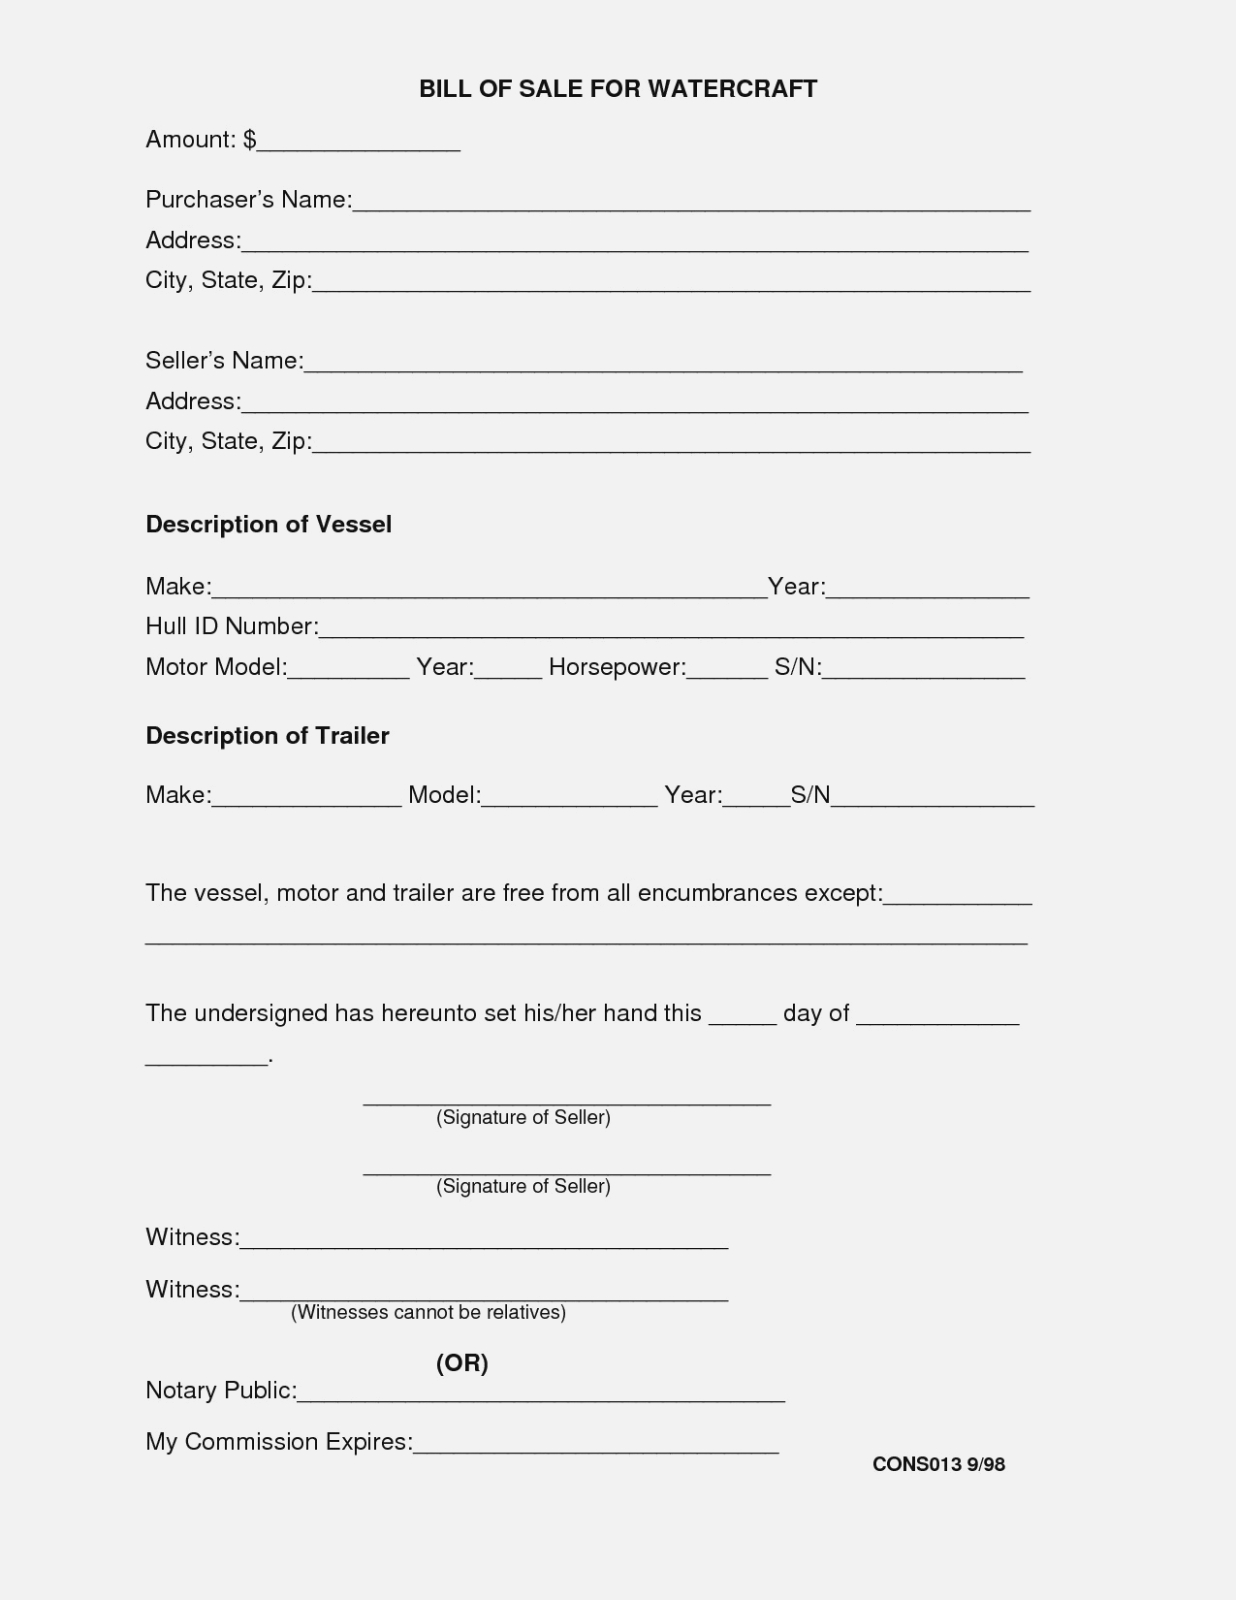 Selling A Business Contract Template Free Valid Blank Bill Sale Form Throughout Sale Of Business Contract Template Free